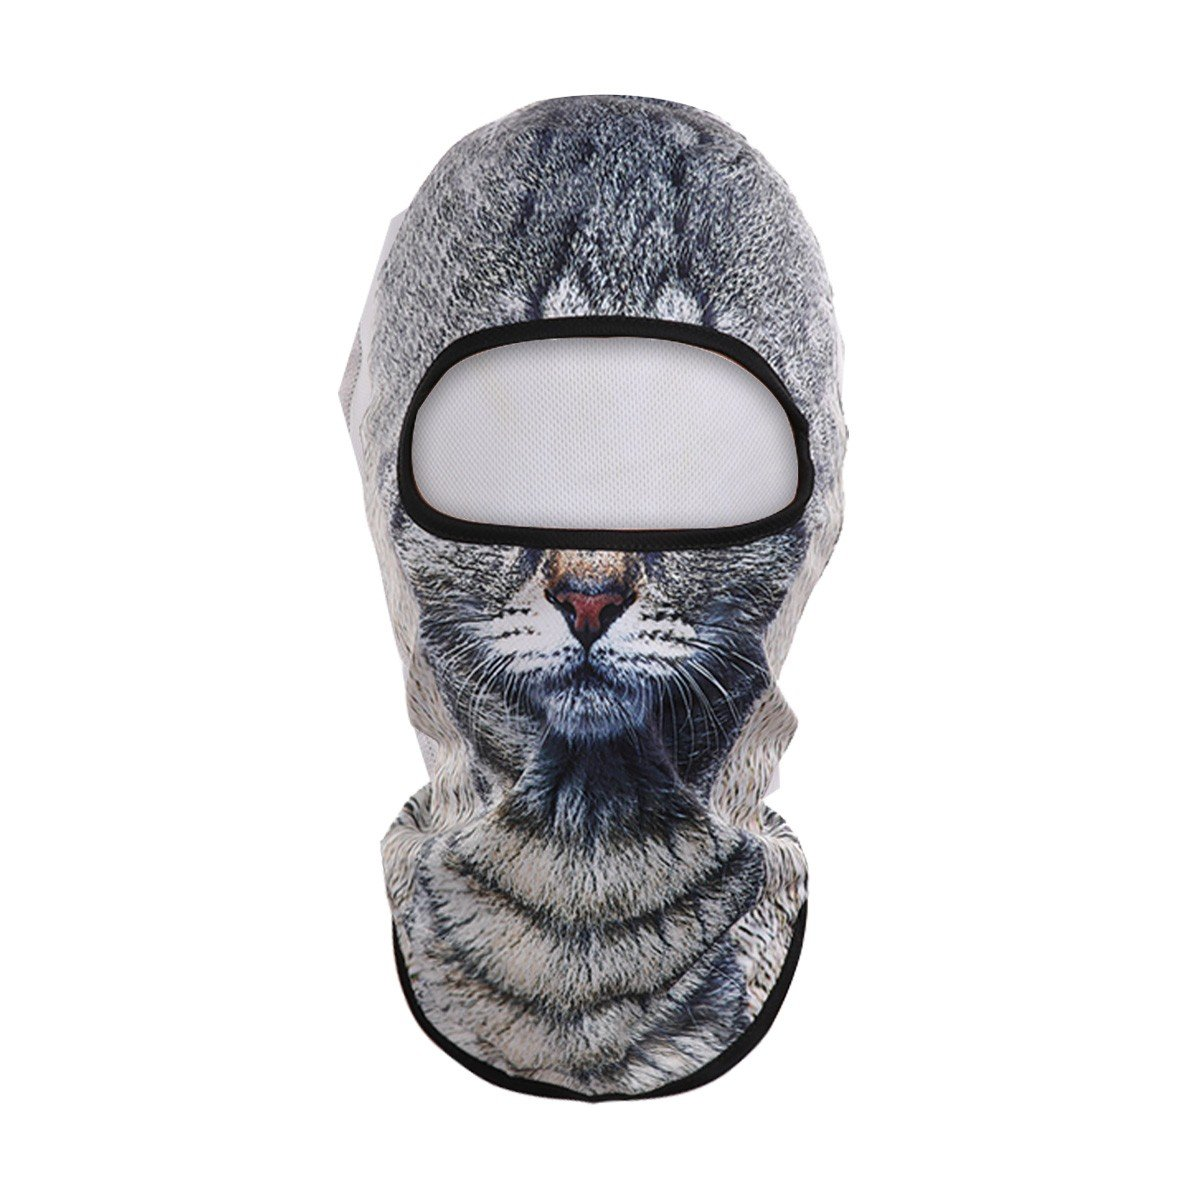 iiniim 3D Animal Snowboard Neoprene Balaclava Ski Mask Full Face Cover Mask Cycling Hat